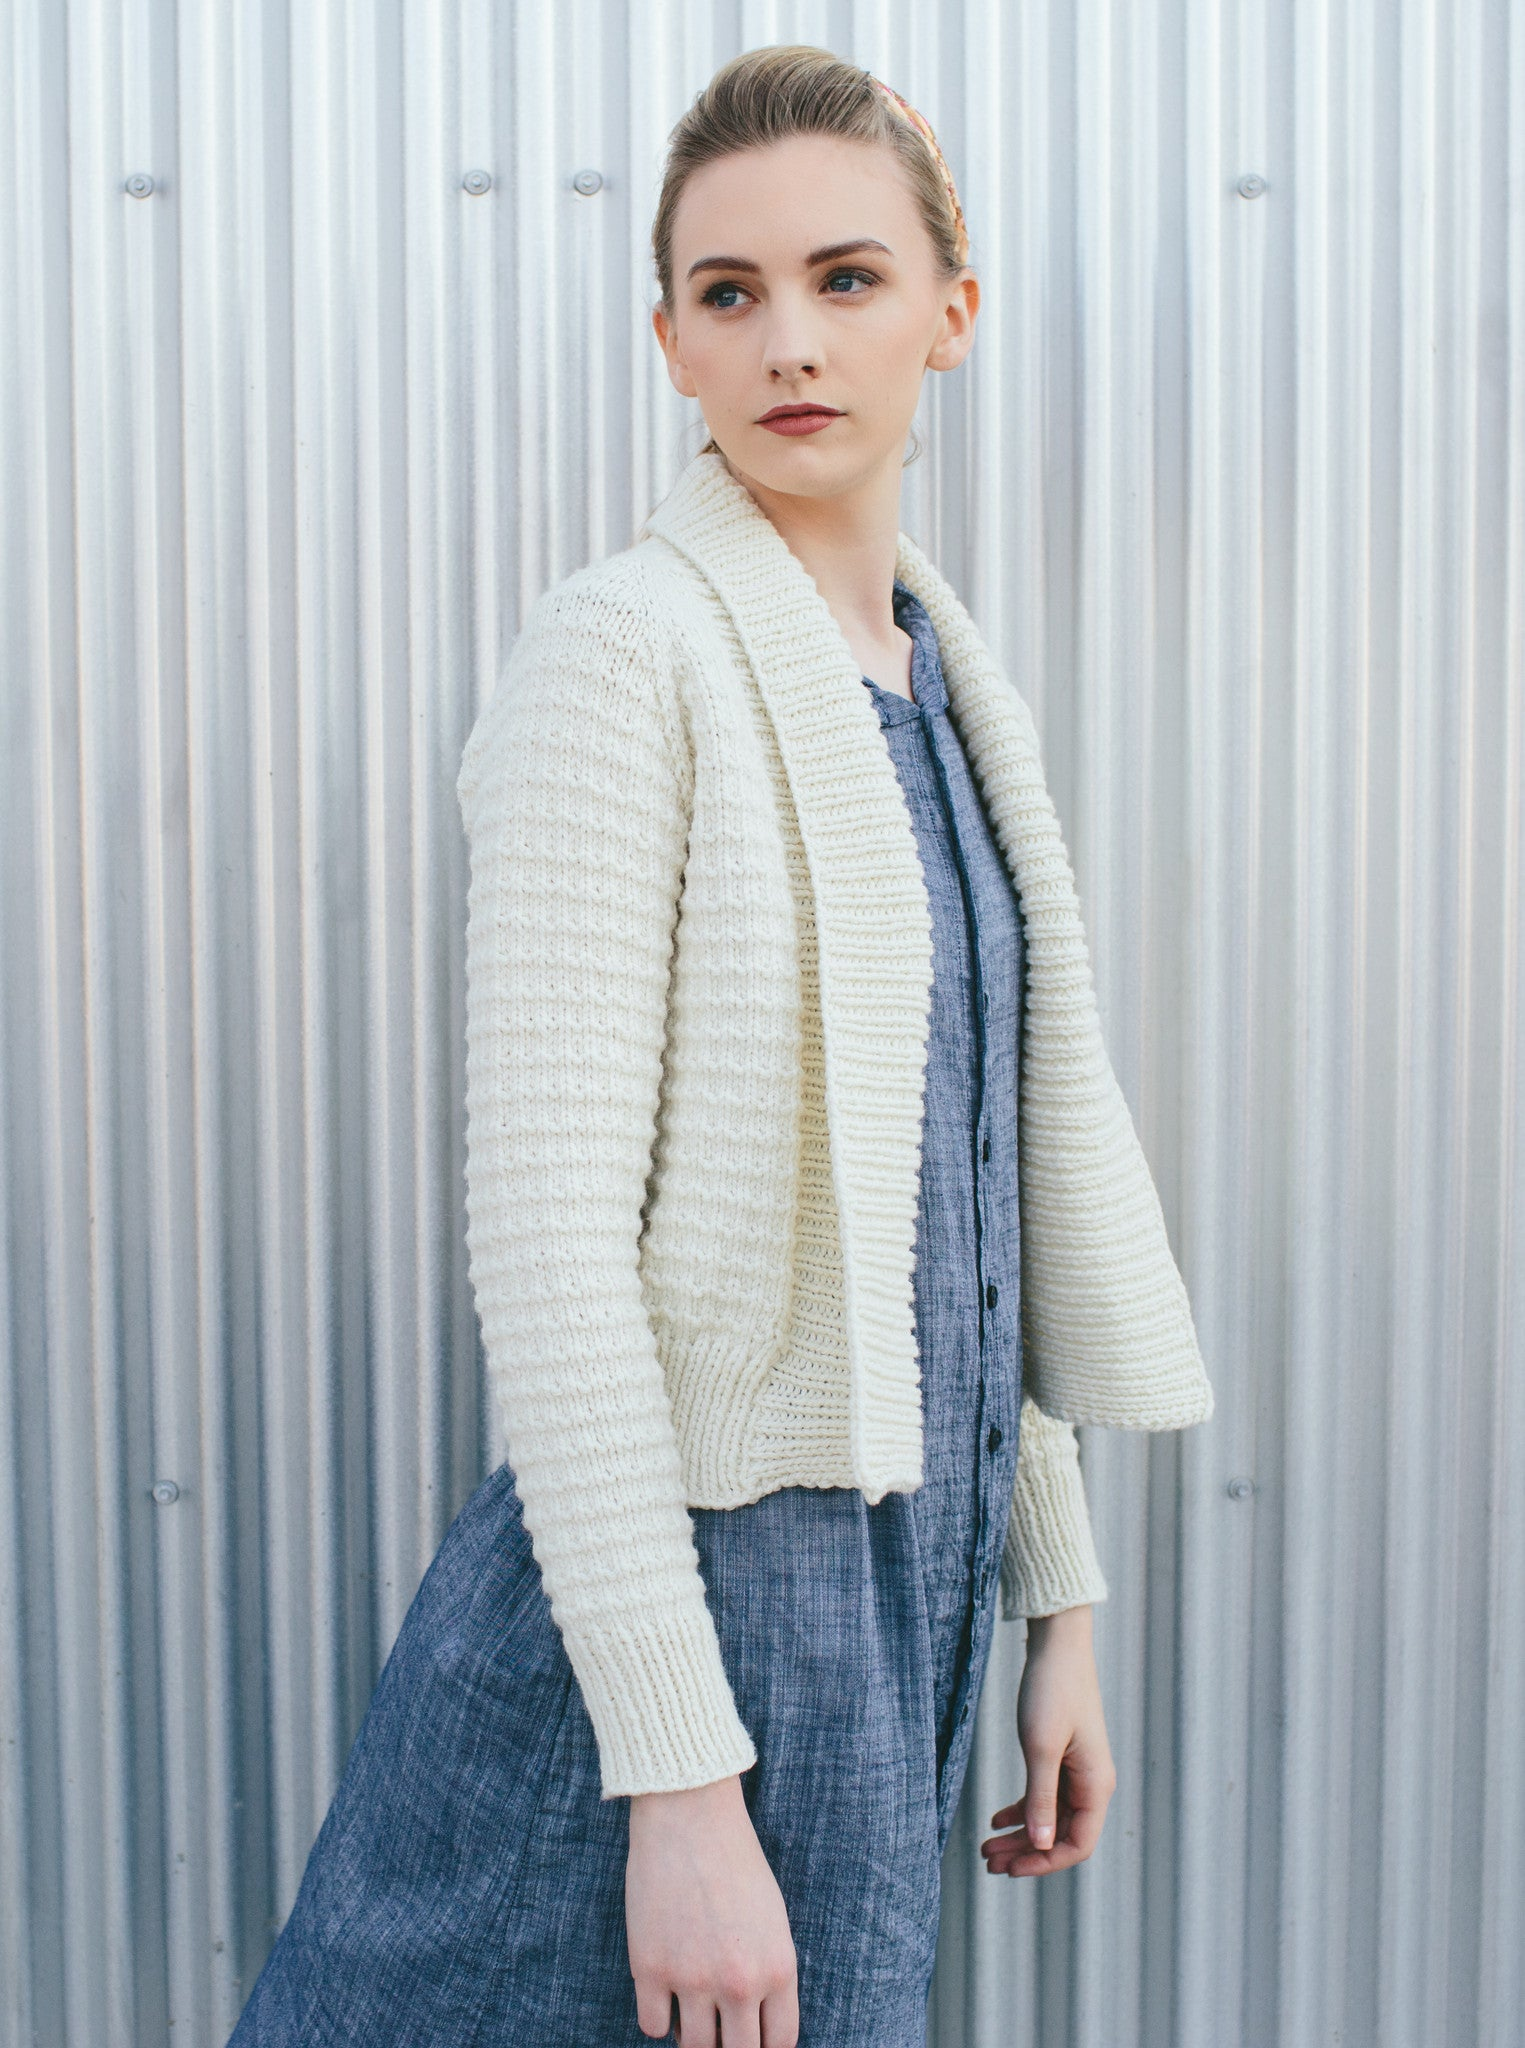 4f9698ee5a5 Texture  Exploring Stitch Patterns in Knitwear by Hannah Fettig ...